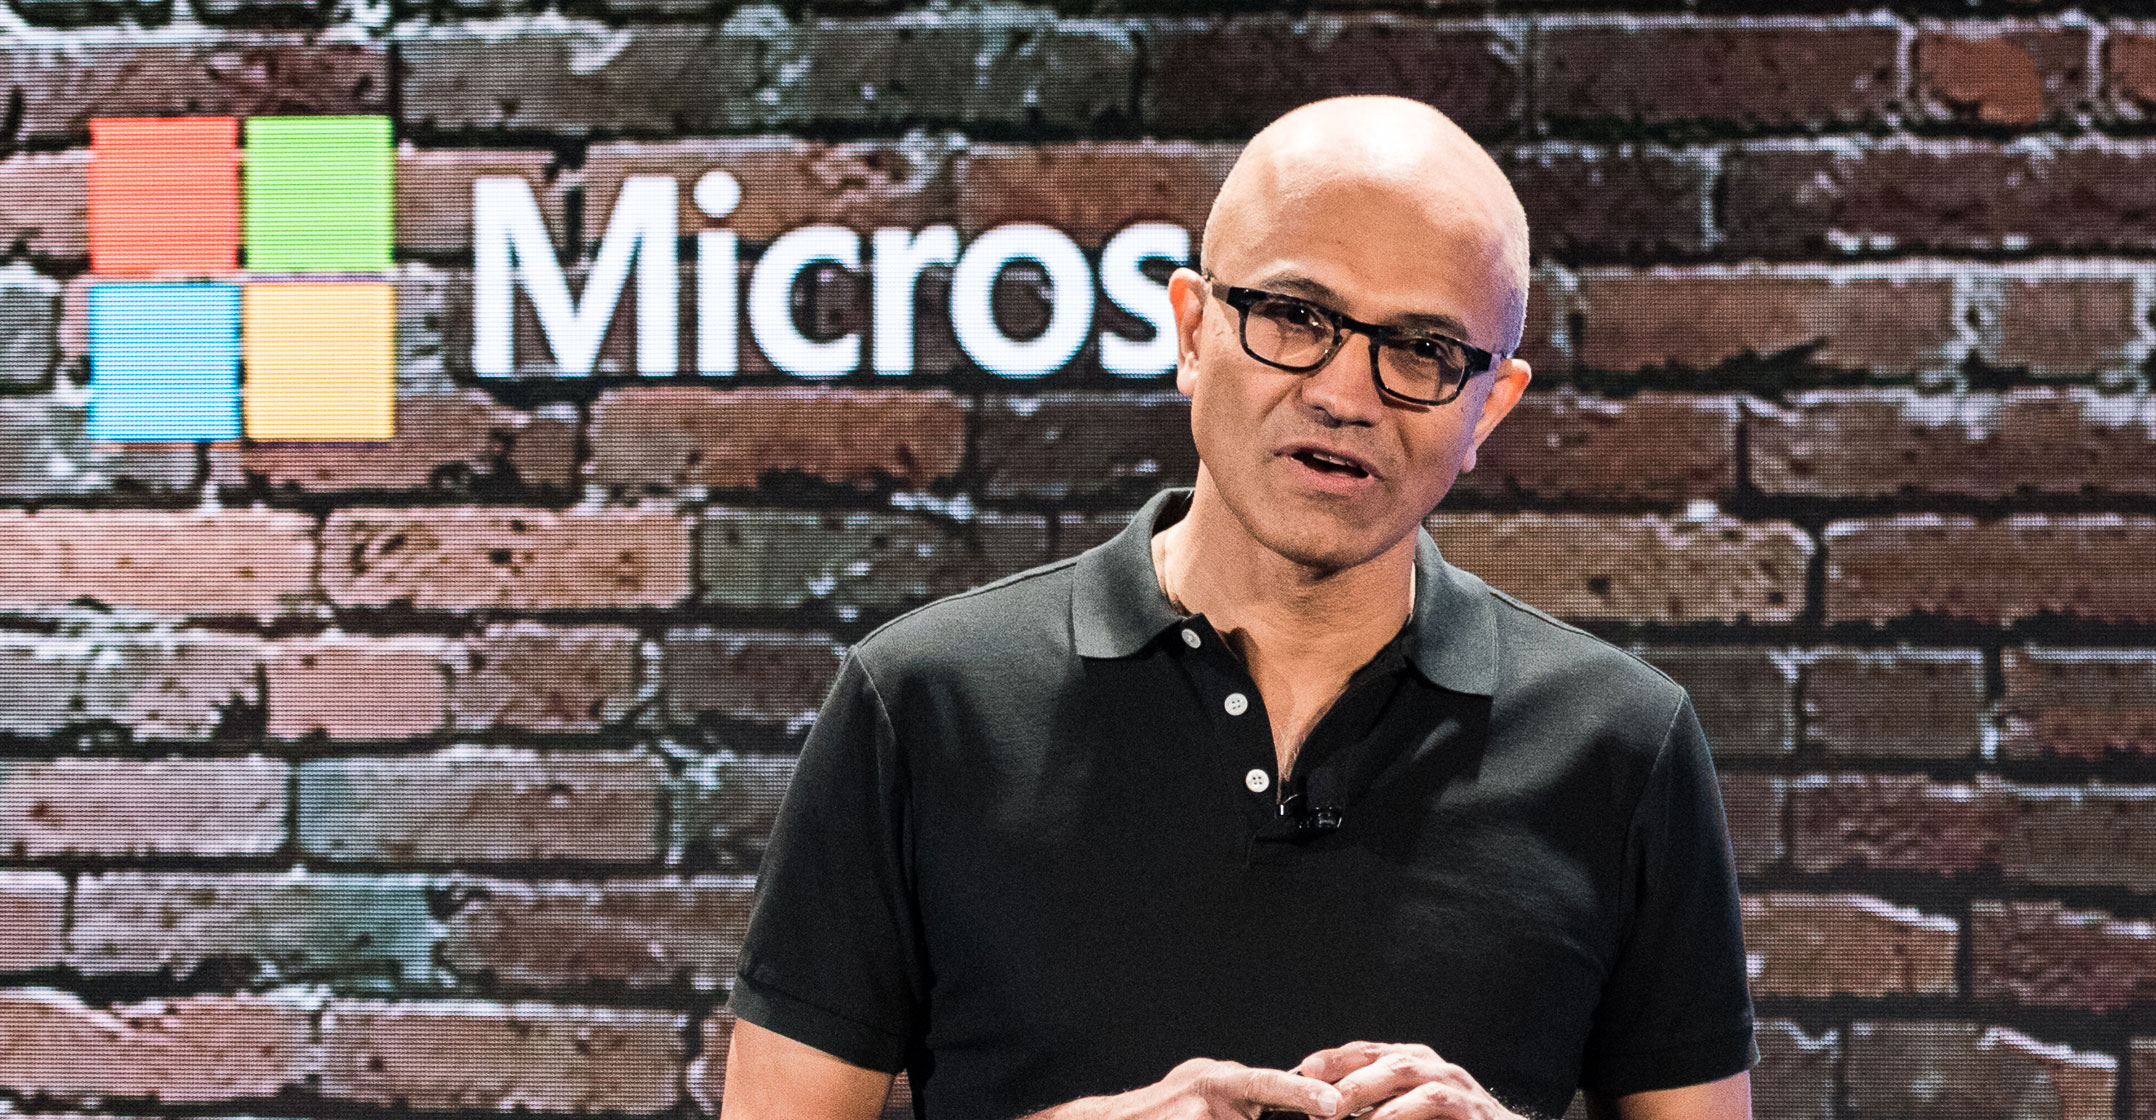 Microsoft's earnings beat expectations as cloud business booms